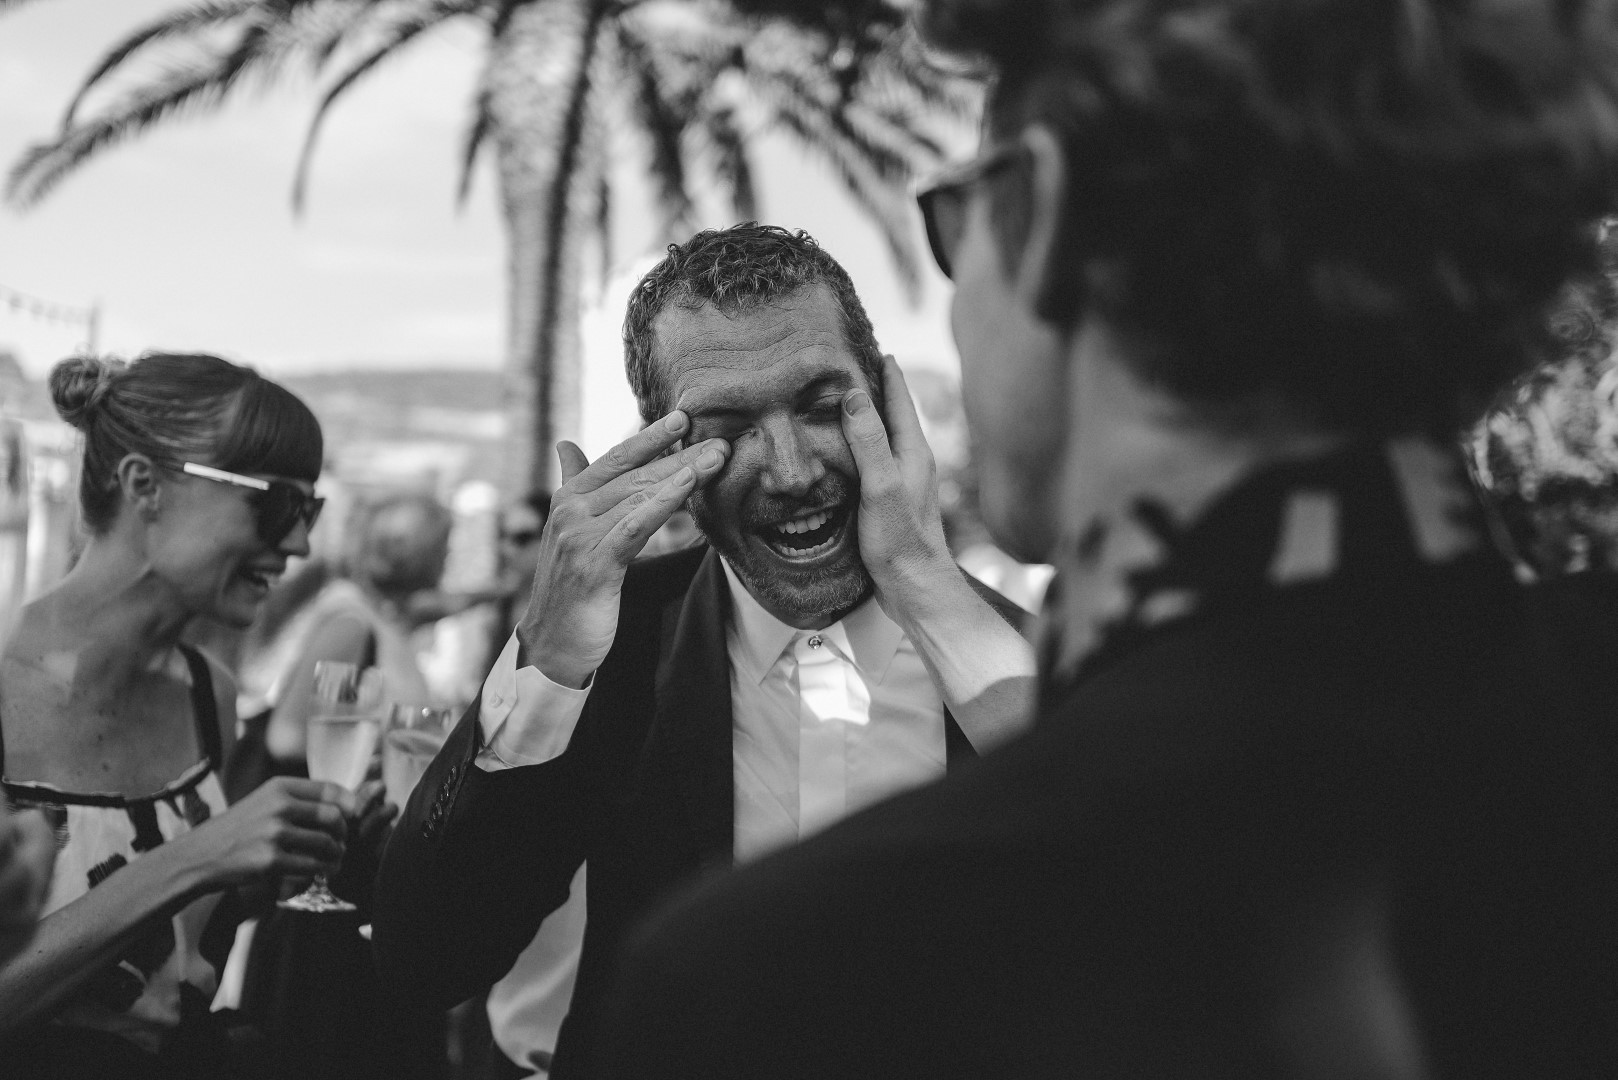 This photo is black and white, taken by Marko Marinkovic. The groom is crying happy tears after the ceremony. One of the guests is wiping off his tears and they are laughing.